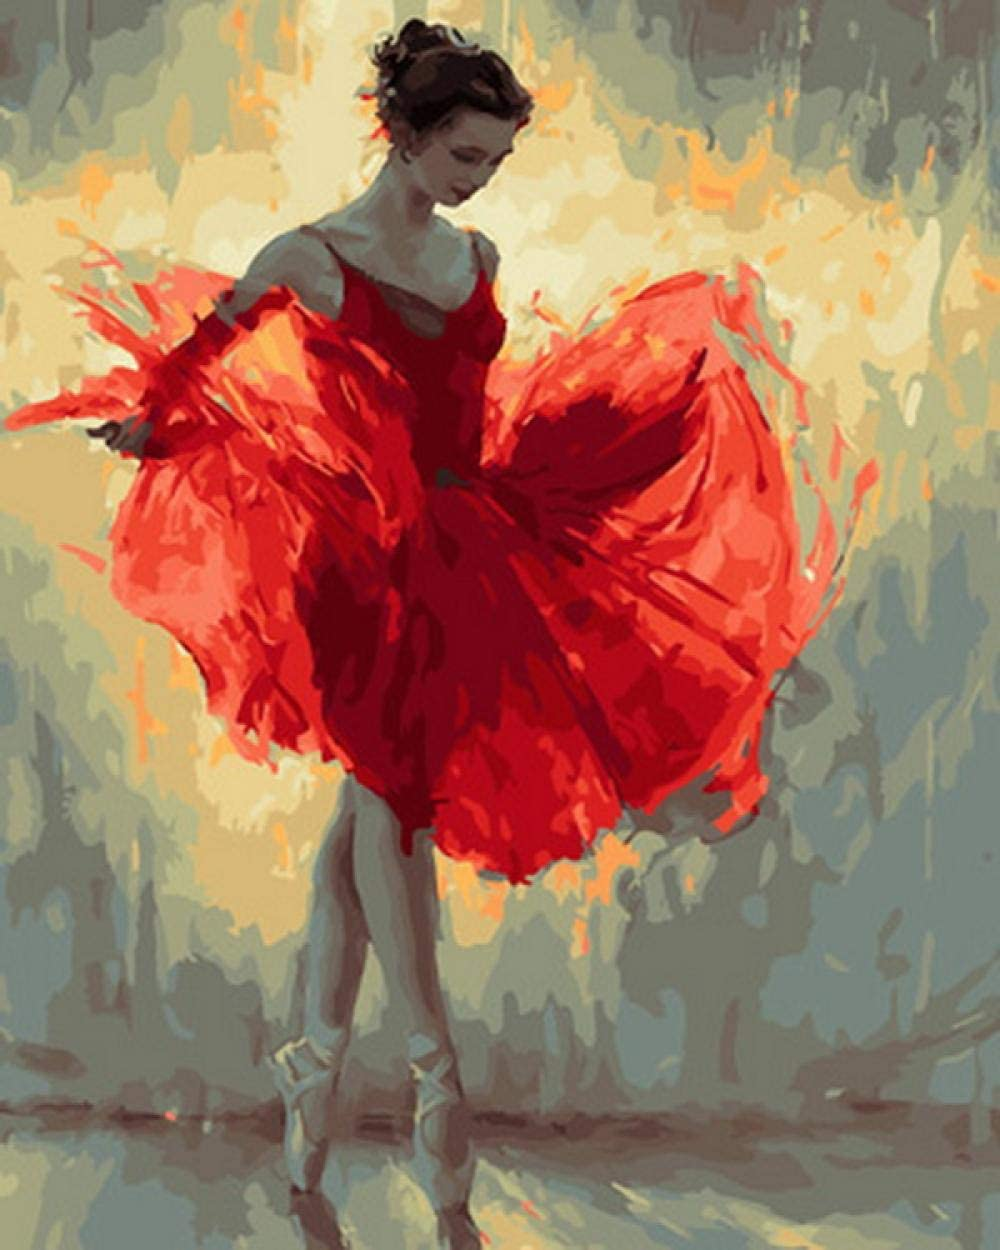 Dancing Girl in Red Dress Painting by number